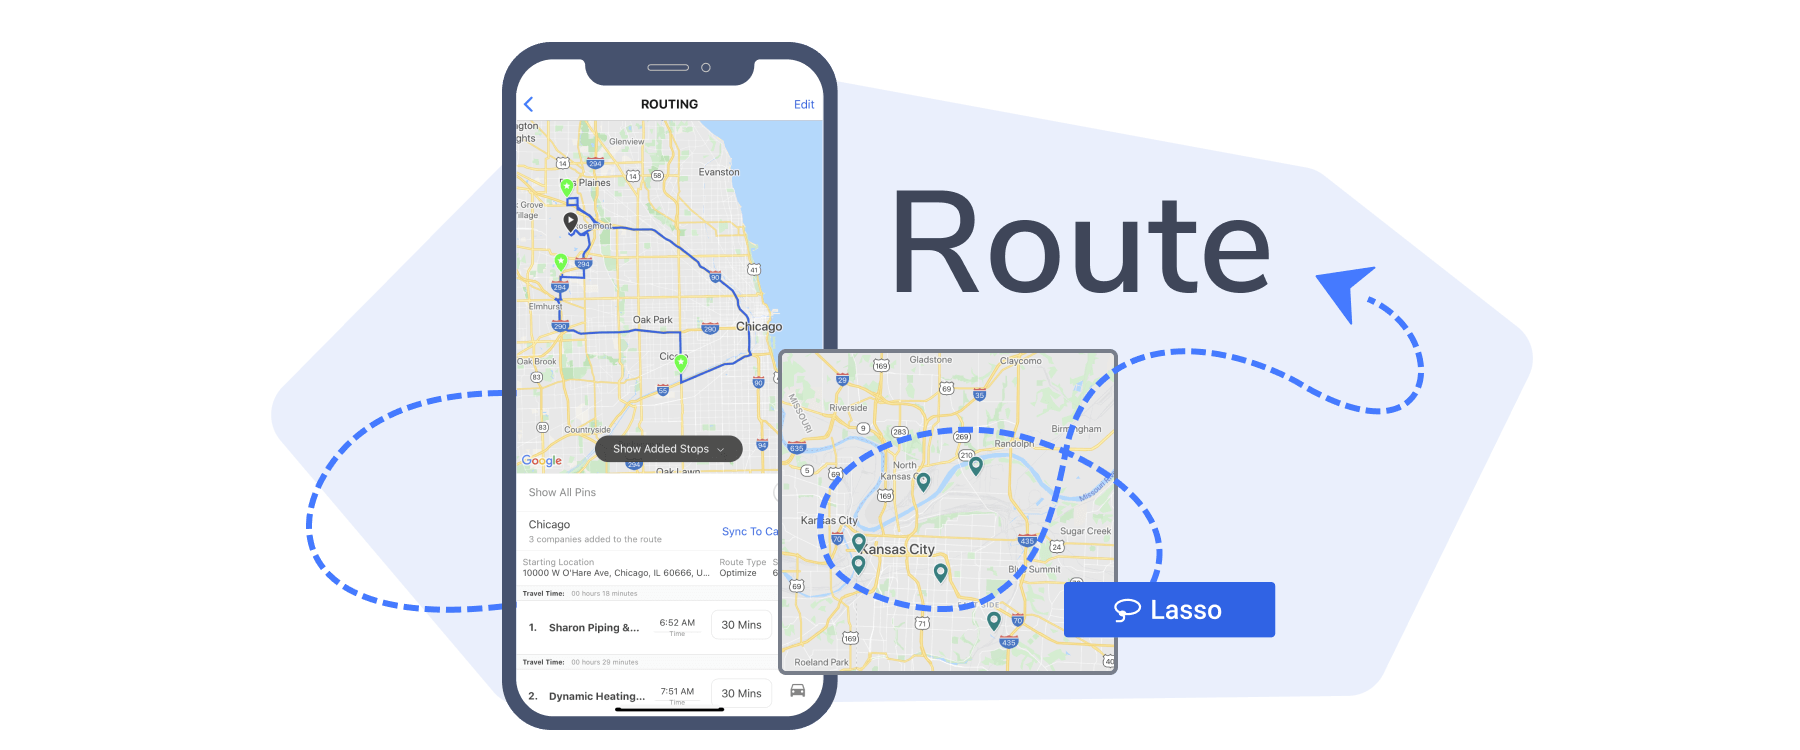 Illustration of Map My Customers' routing capabilities